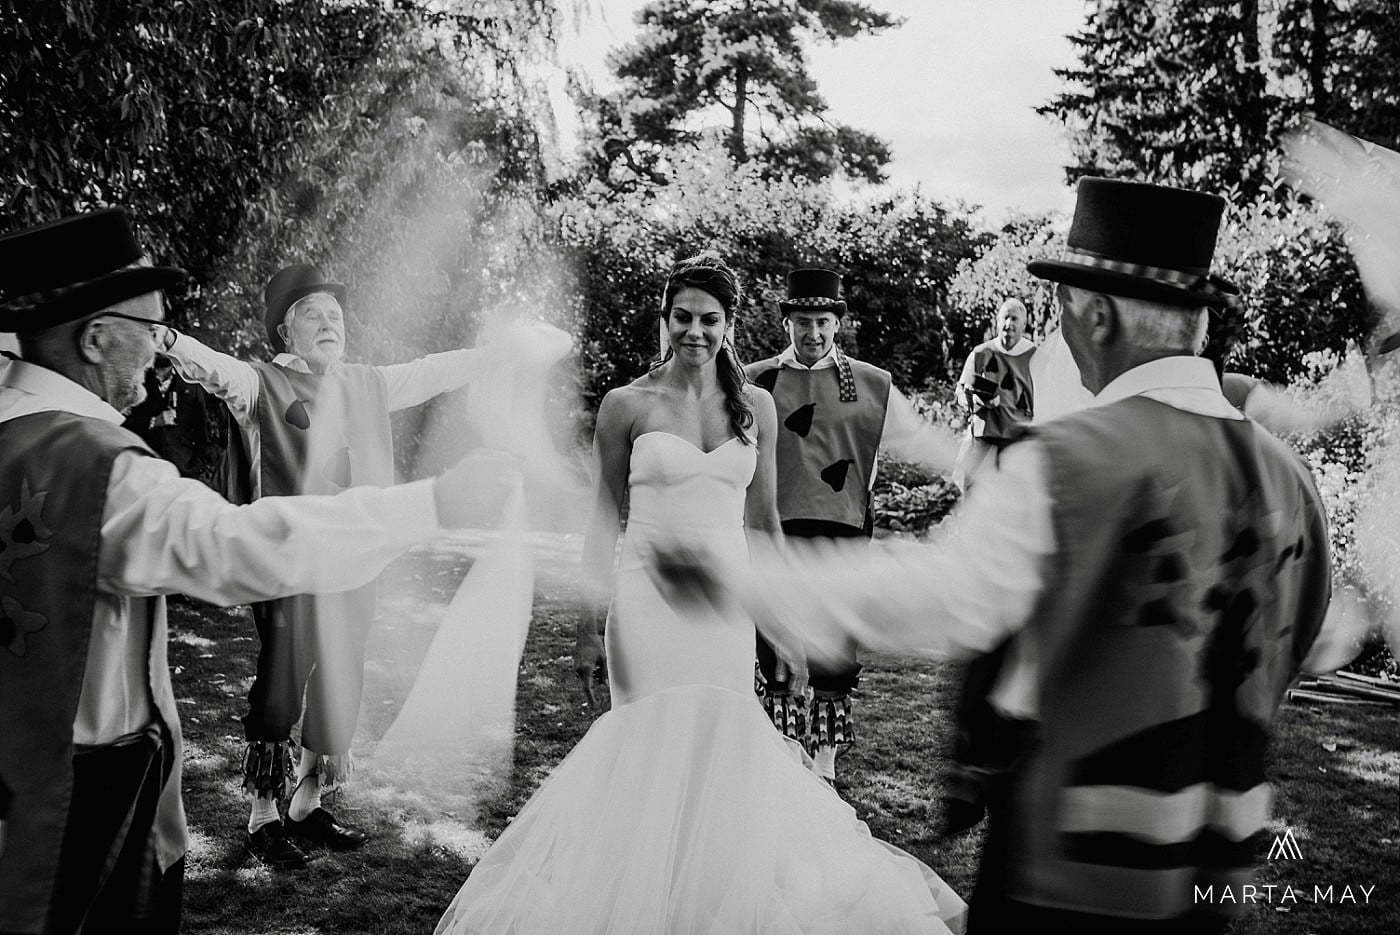 Morris dancing wedding